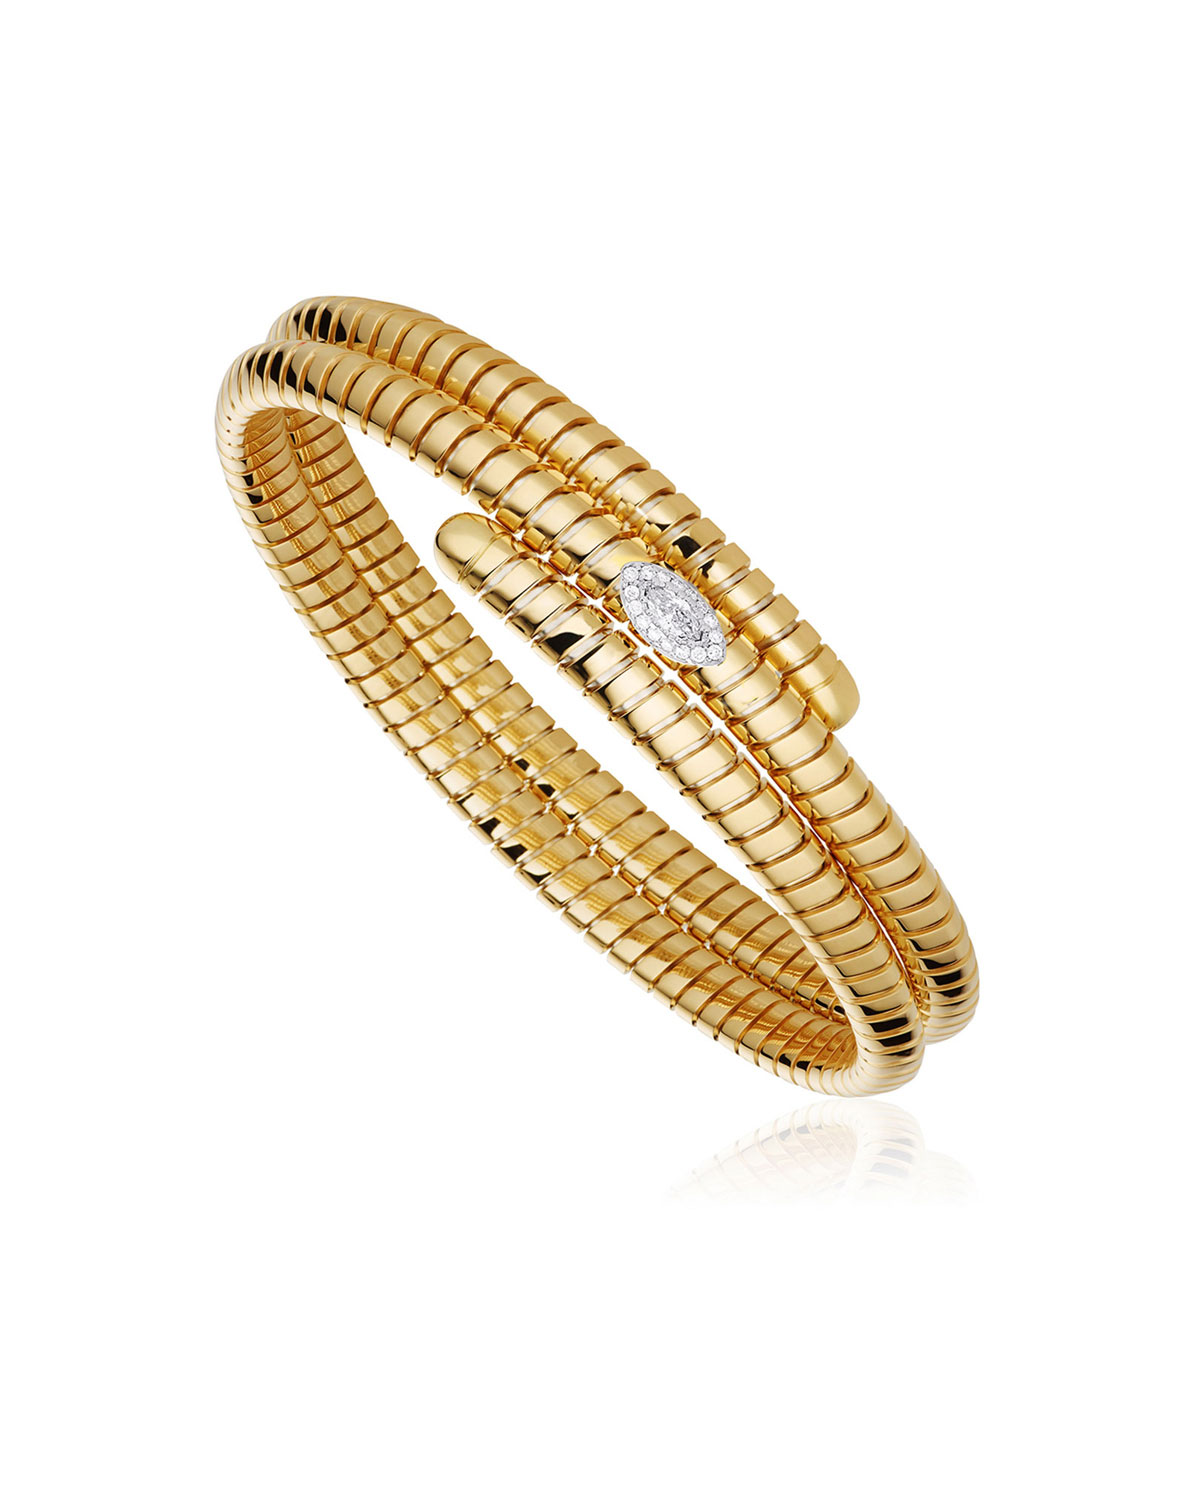 MARINA B Trisola 18K Diamond Triple Navetta Bangle, Size M